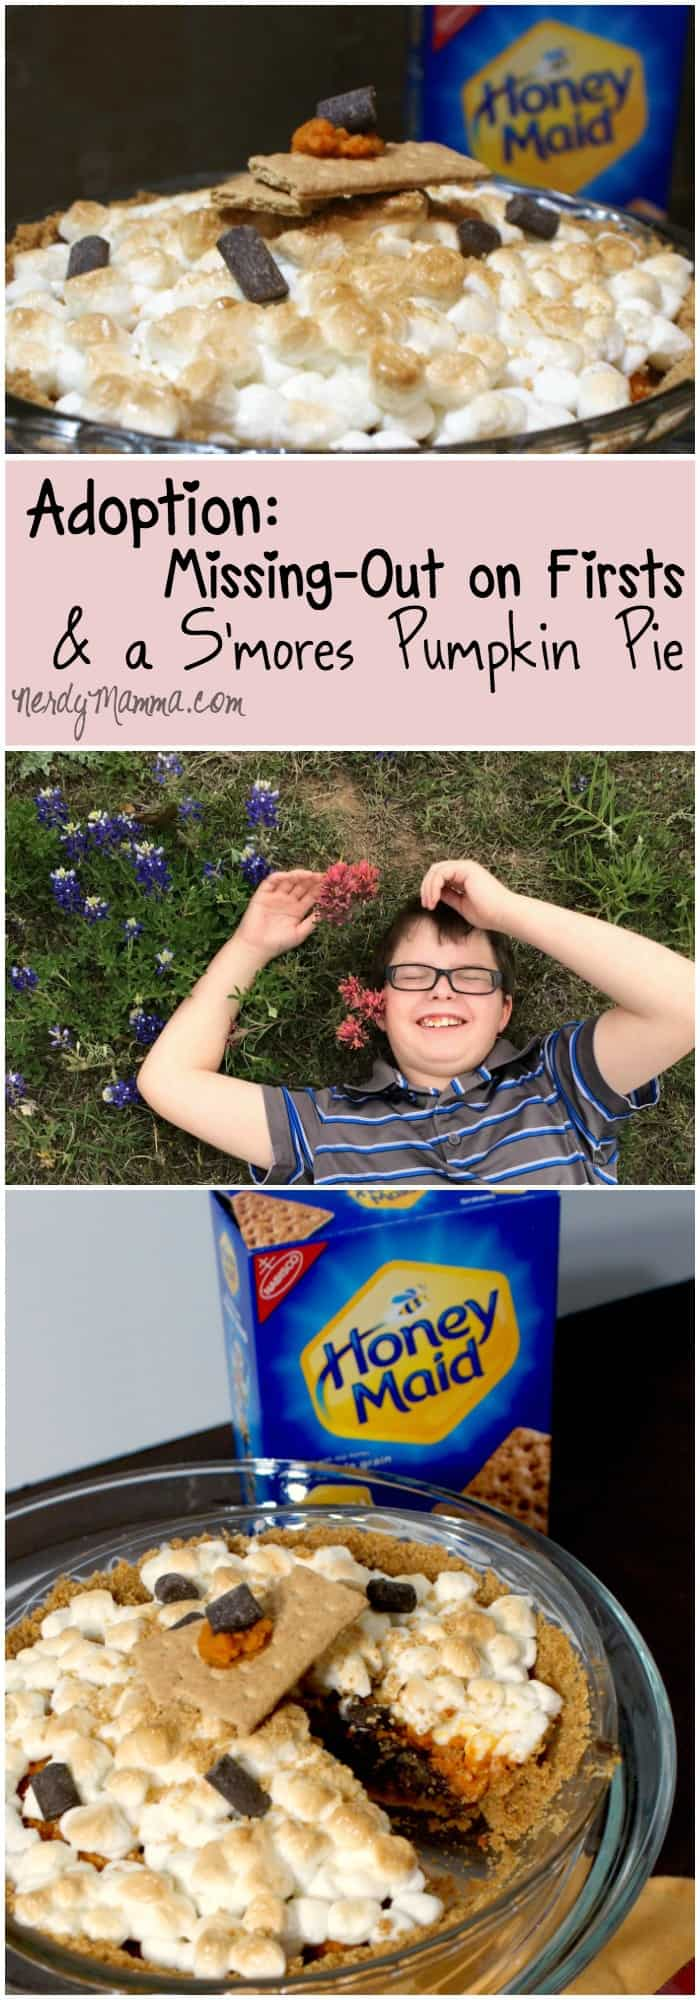 I love this story about adoption of an older kid. And the Vegan S'mores Pumpkin Pie isn't bad either! LOL!